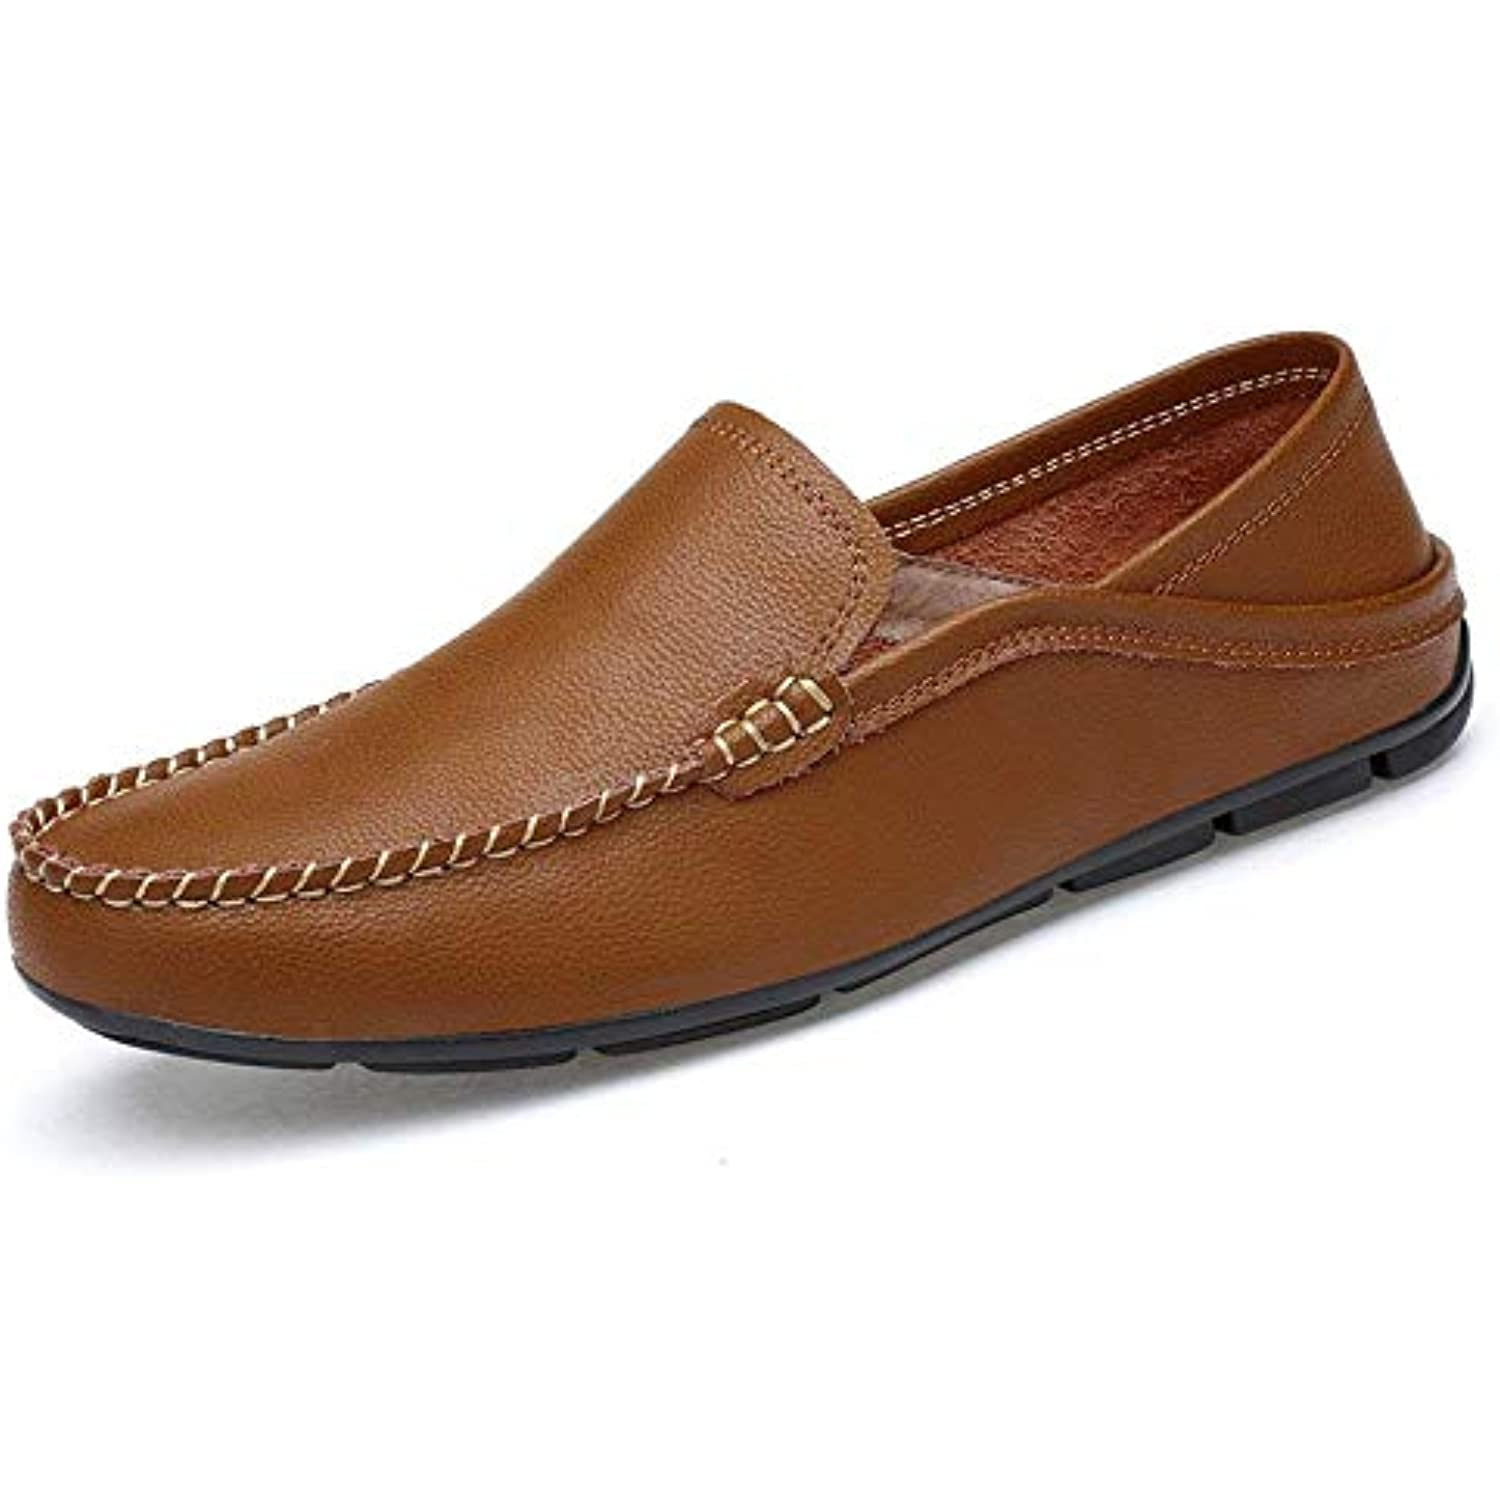 Homme Fuweiencore Rafraîchissantes Casual 2018 Chaussures gqvnxw1RX